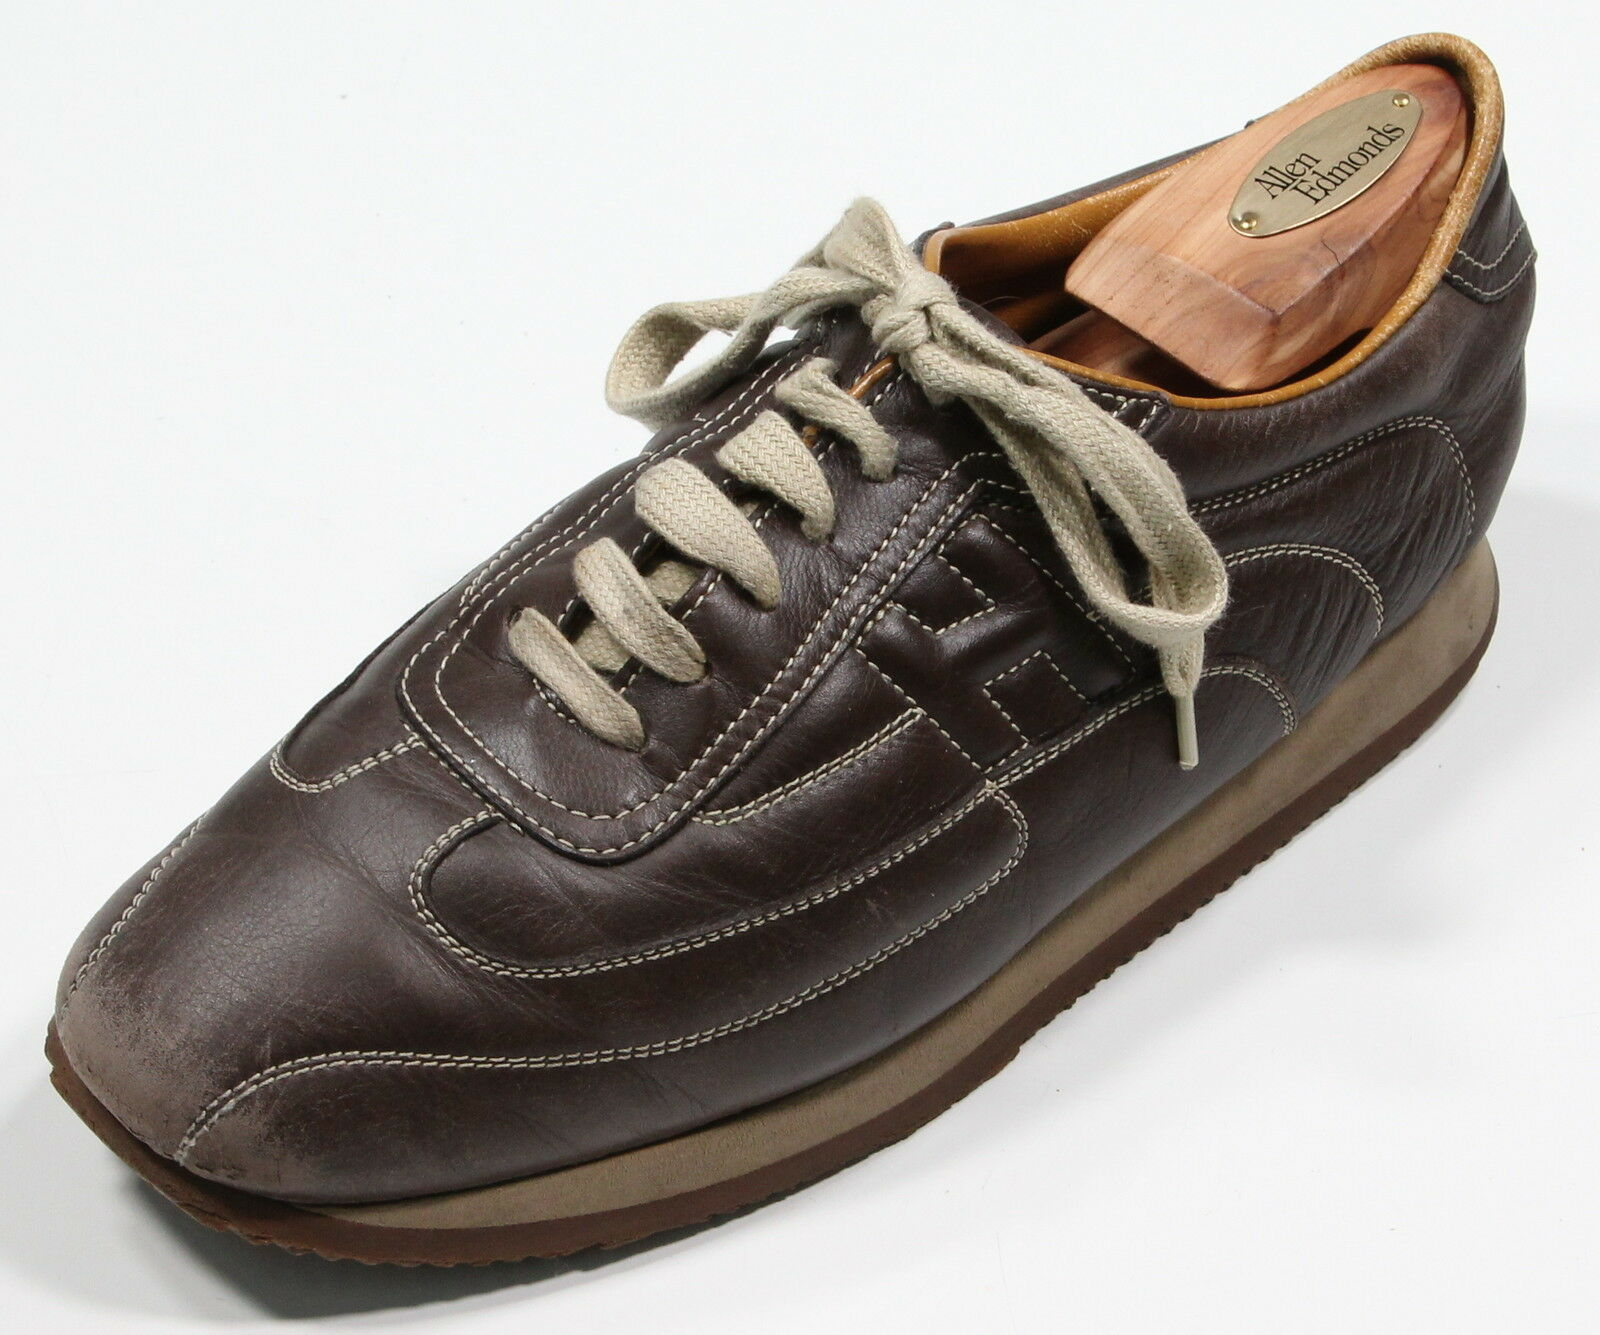 HERMES  Paris Brown 'Quicker' Leather H Logo Stitched Sneakers Eu 40 - US 7